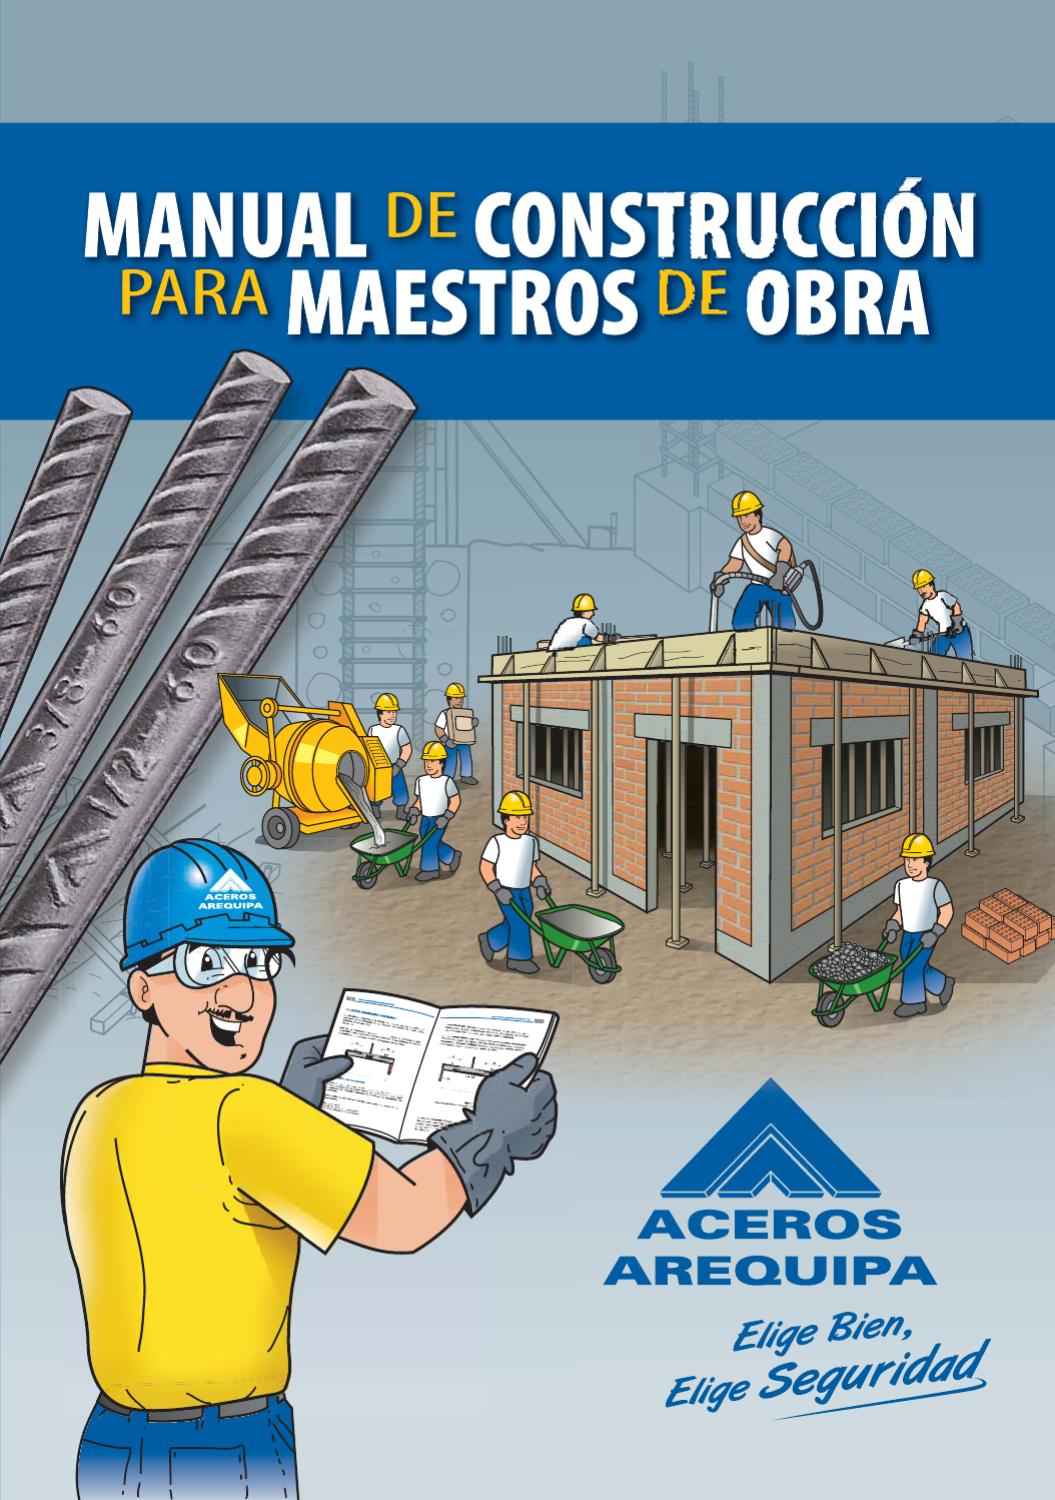 Manual de construcci n para maestros de obra by for Construccion de estanques para piscicultura